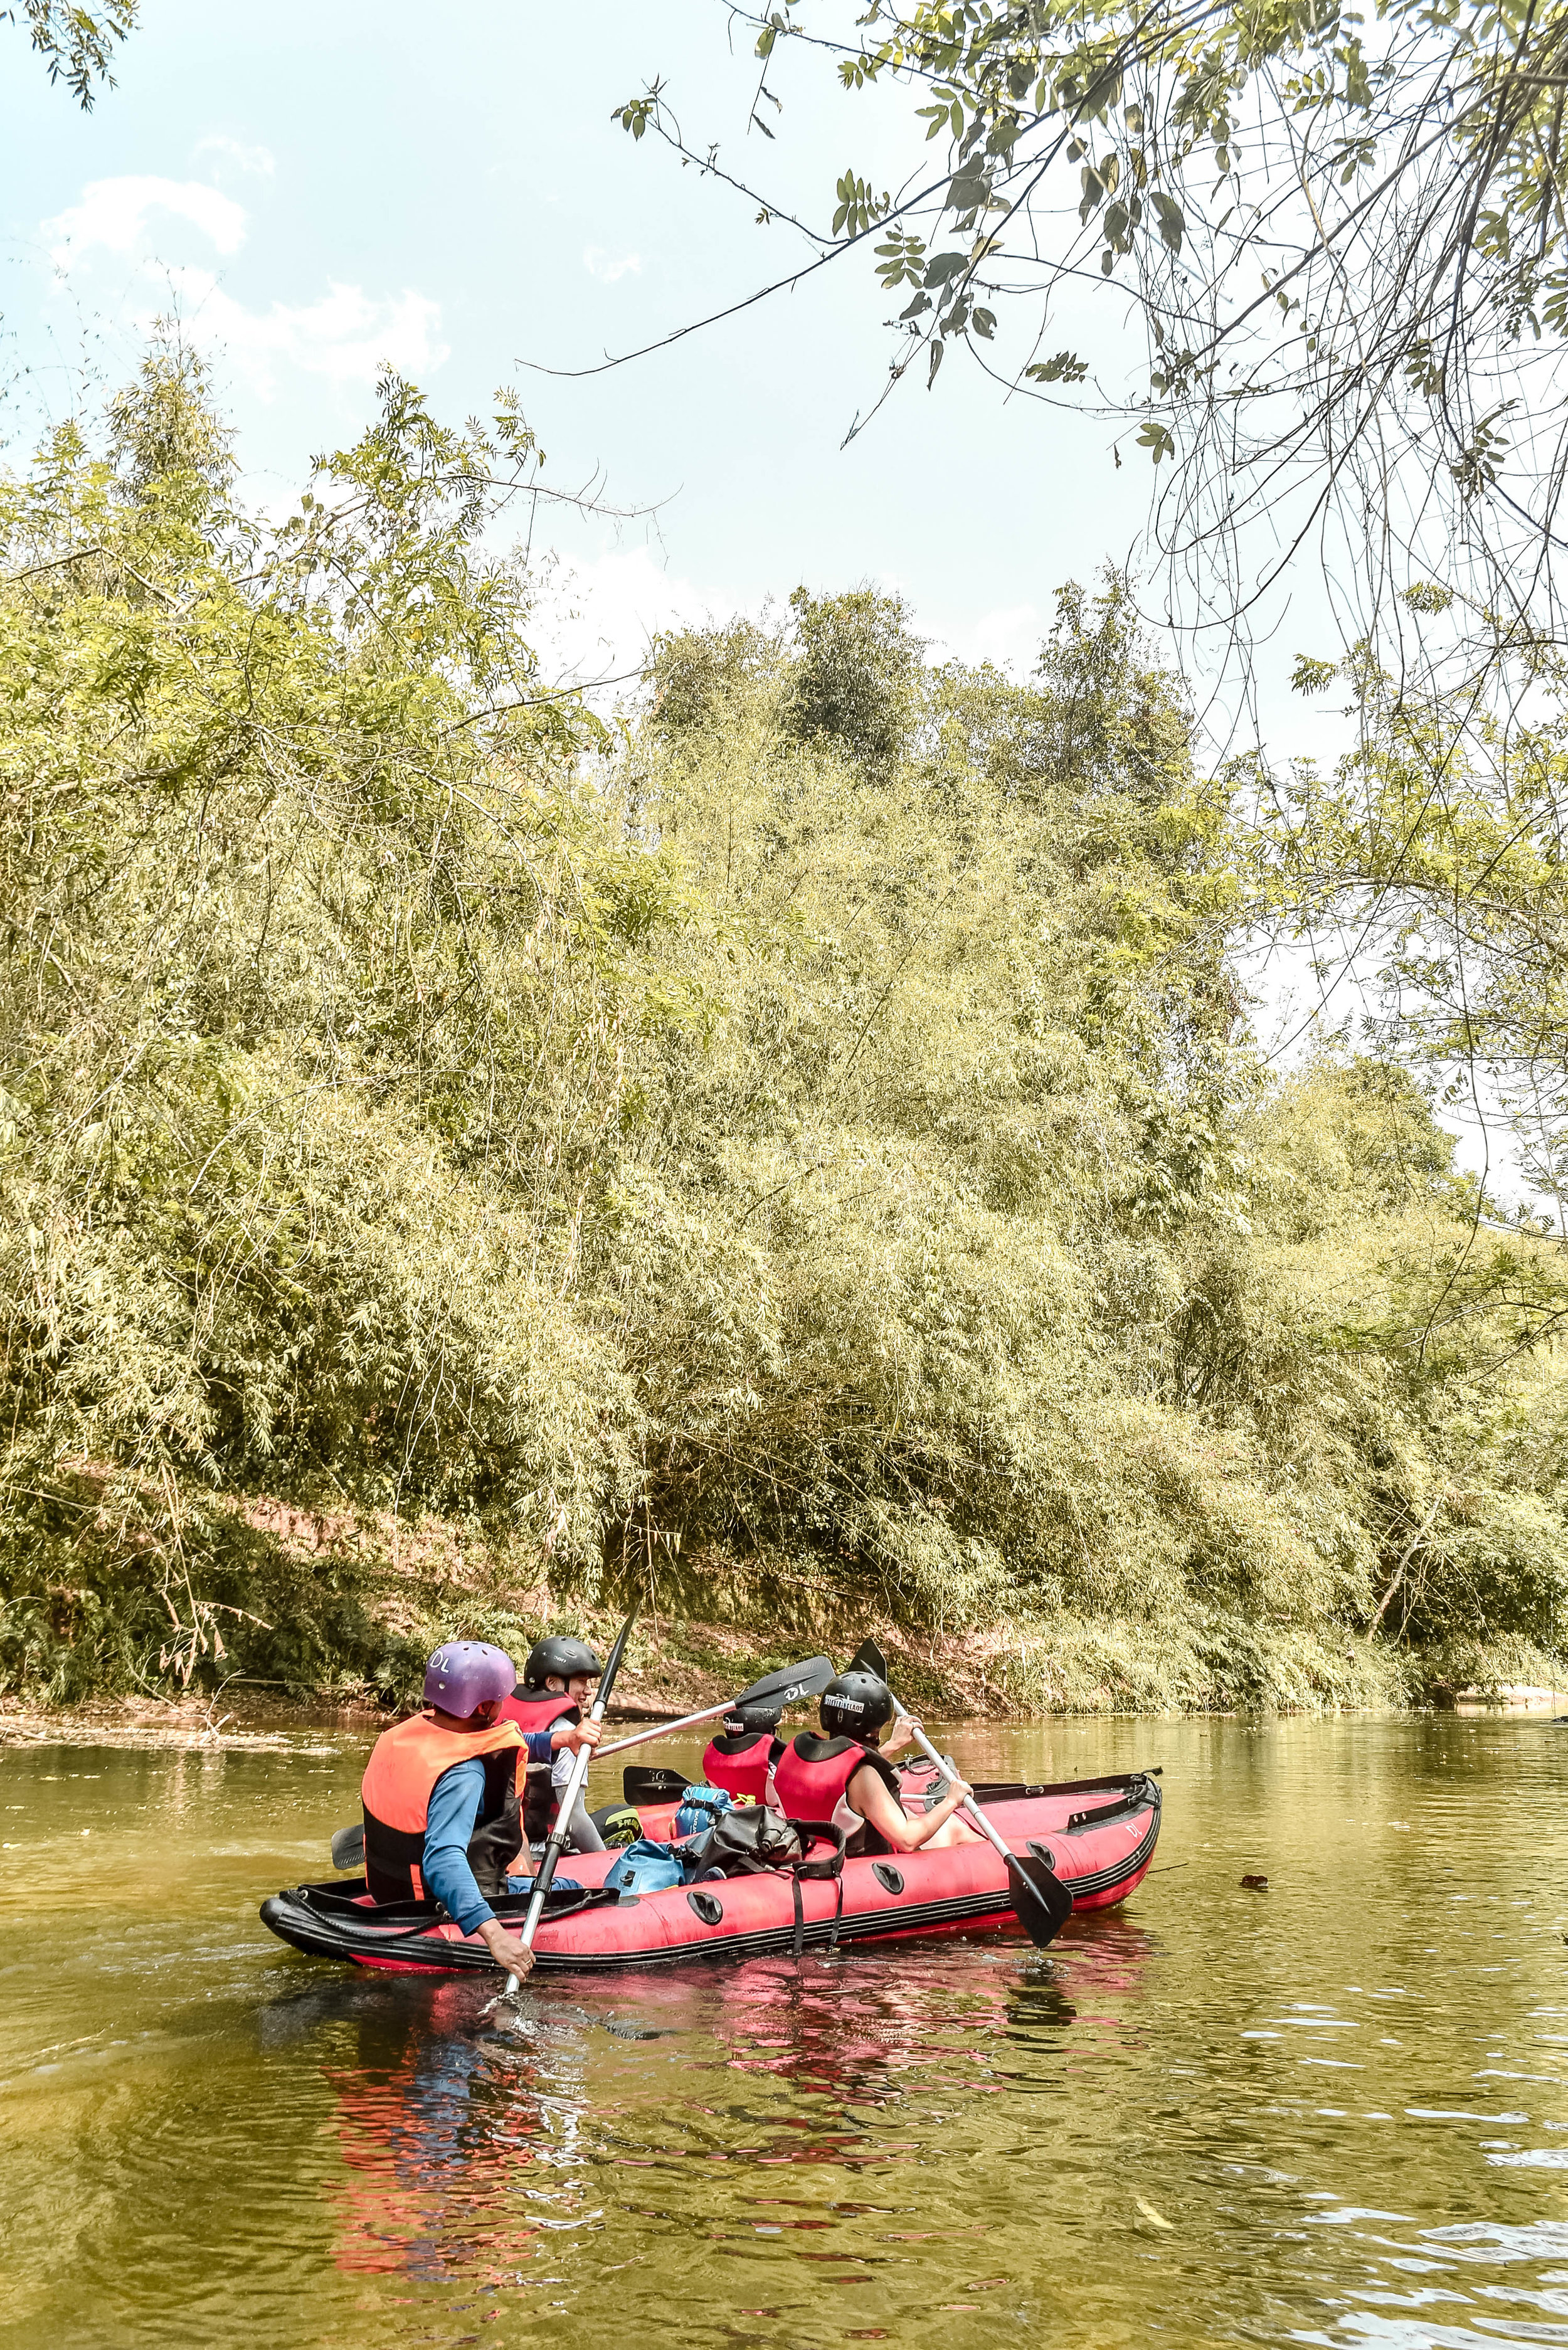 Kayaking the Nam Ha River in the northern part of Laos is a scenic escape for intrepid travelers looking for off-the-beaten path adventures that bring them back to nature.